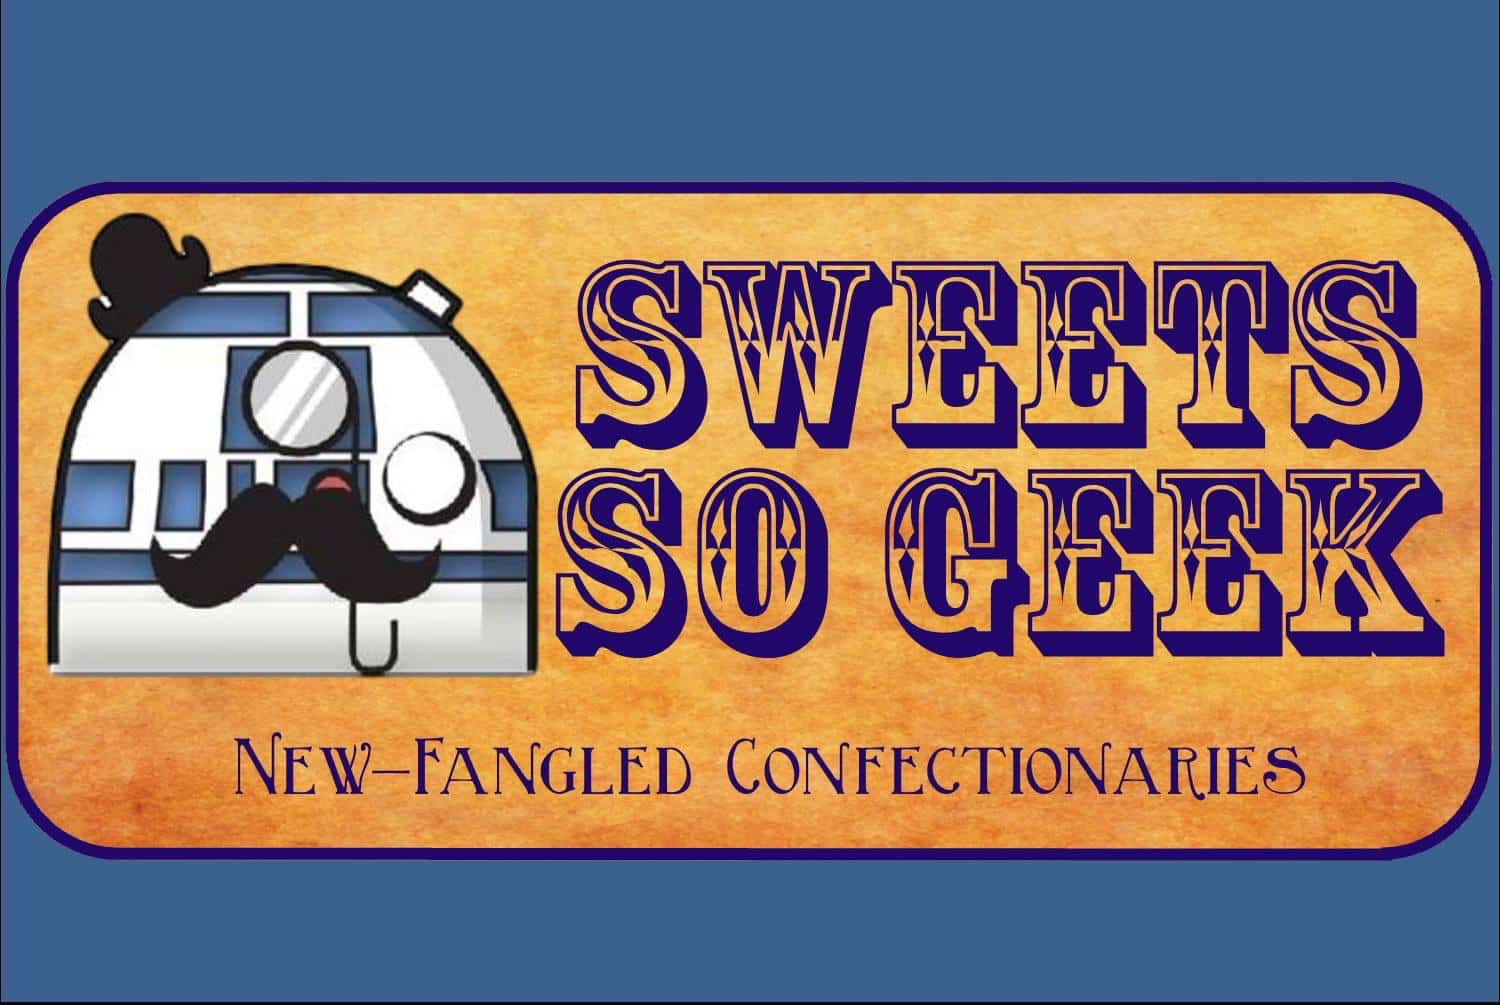 Artist Profile: Chad Seewald / Sweets So Geek